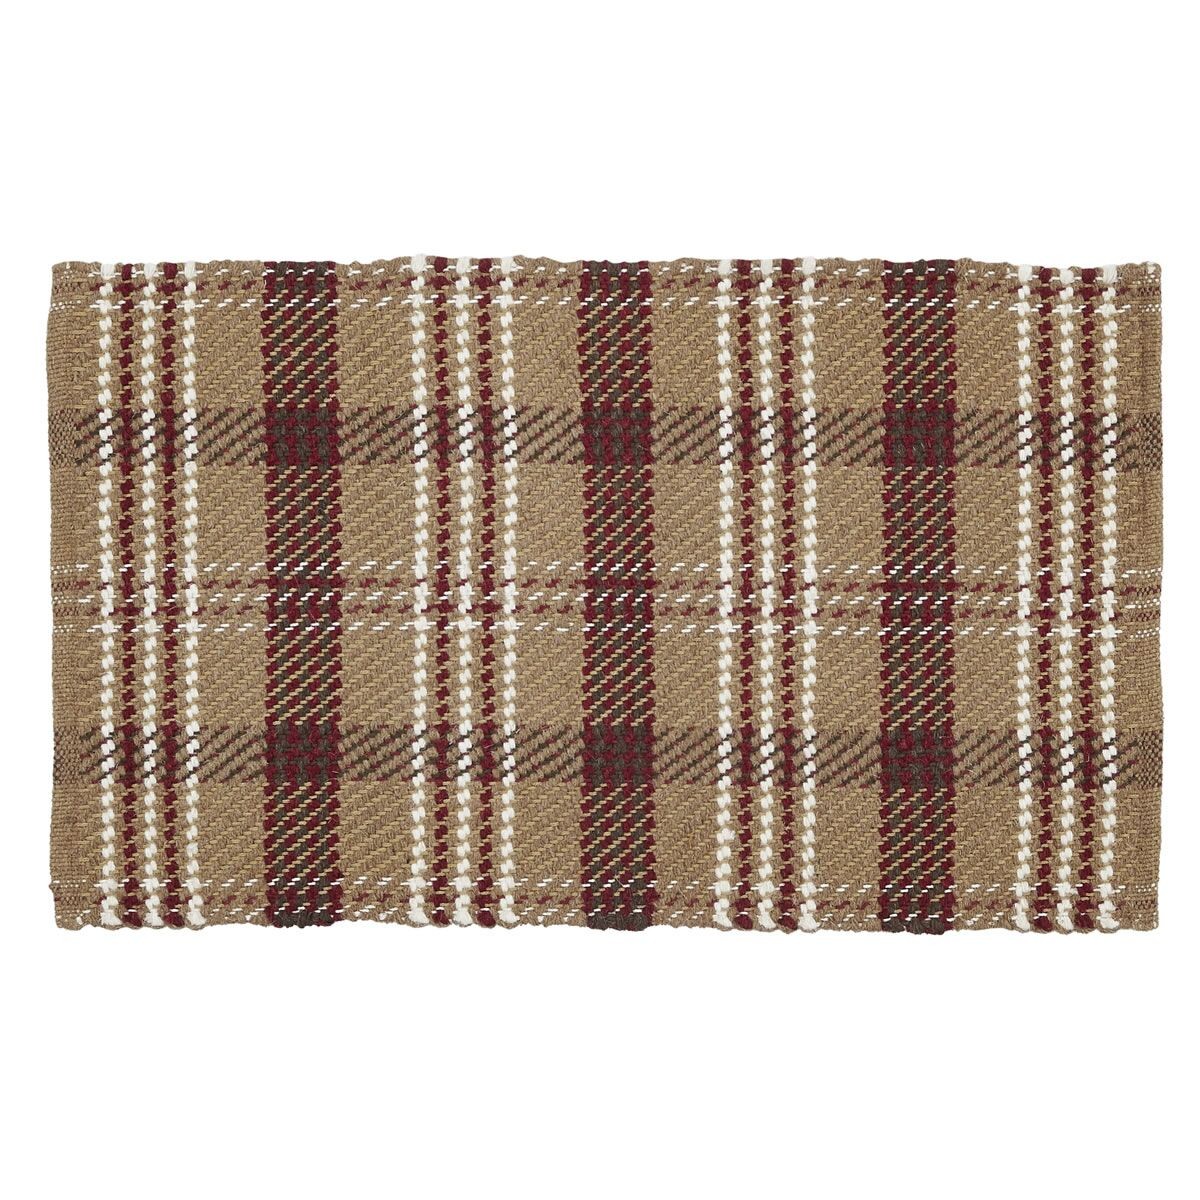 Whigham Tan / Dark Red Area Rug Rug Size: 4' x 6'